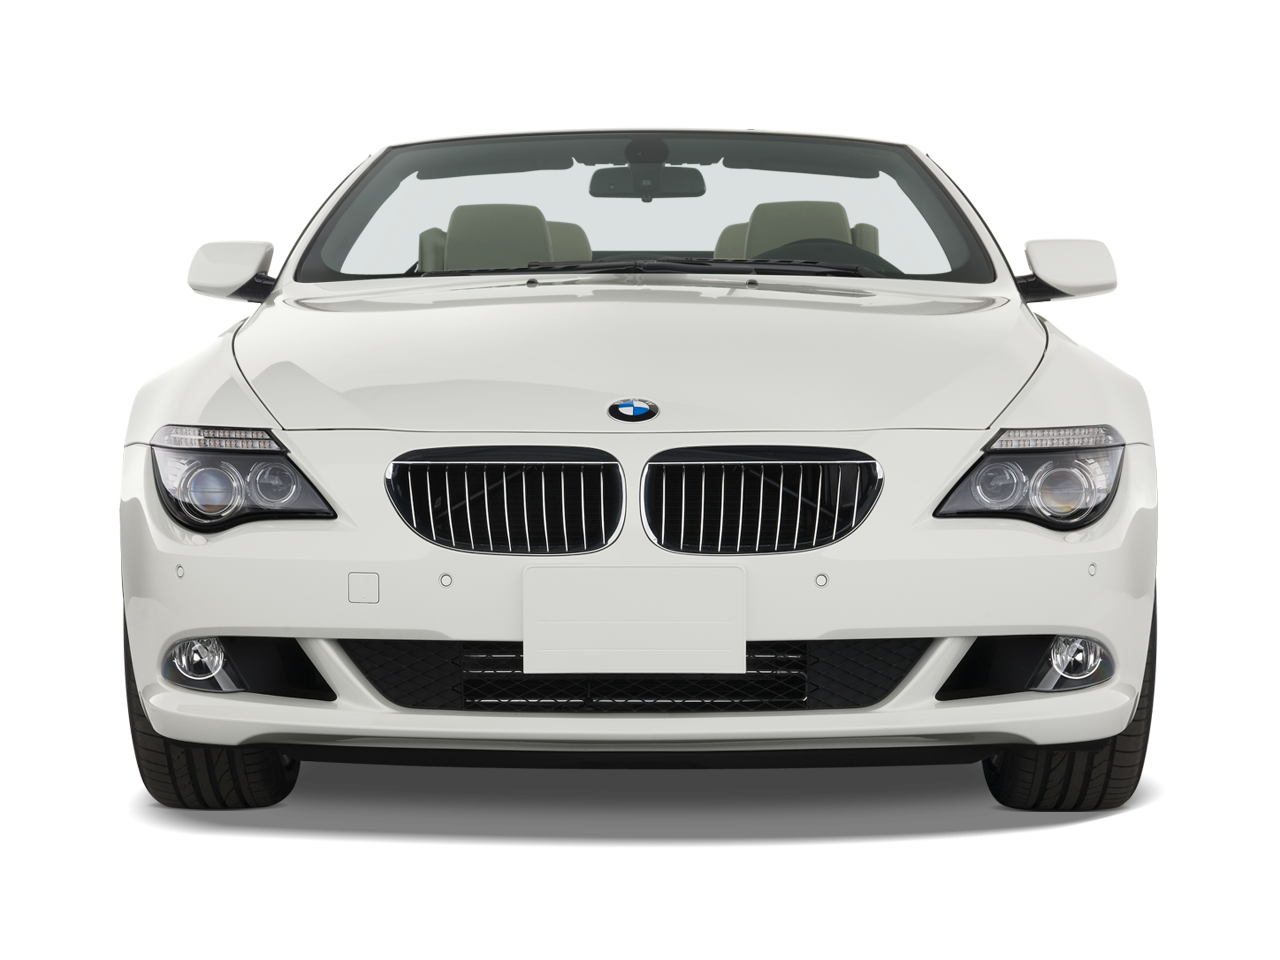 2008 bmw 6 series facelift latest news features and. Black Bedroom Furniture Sets. Home Design Ideas